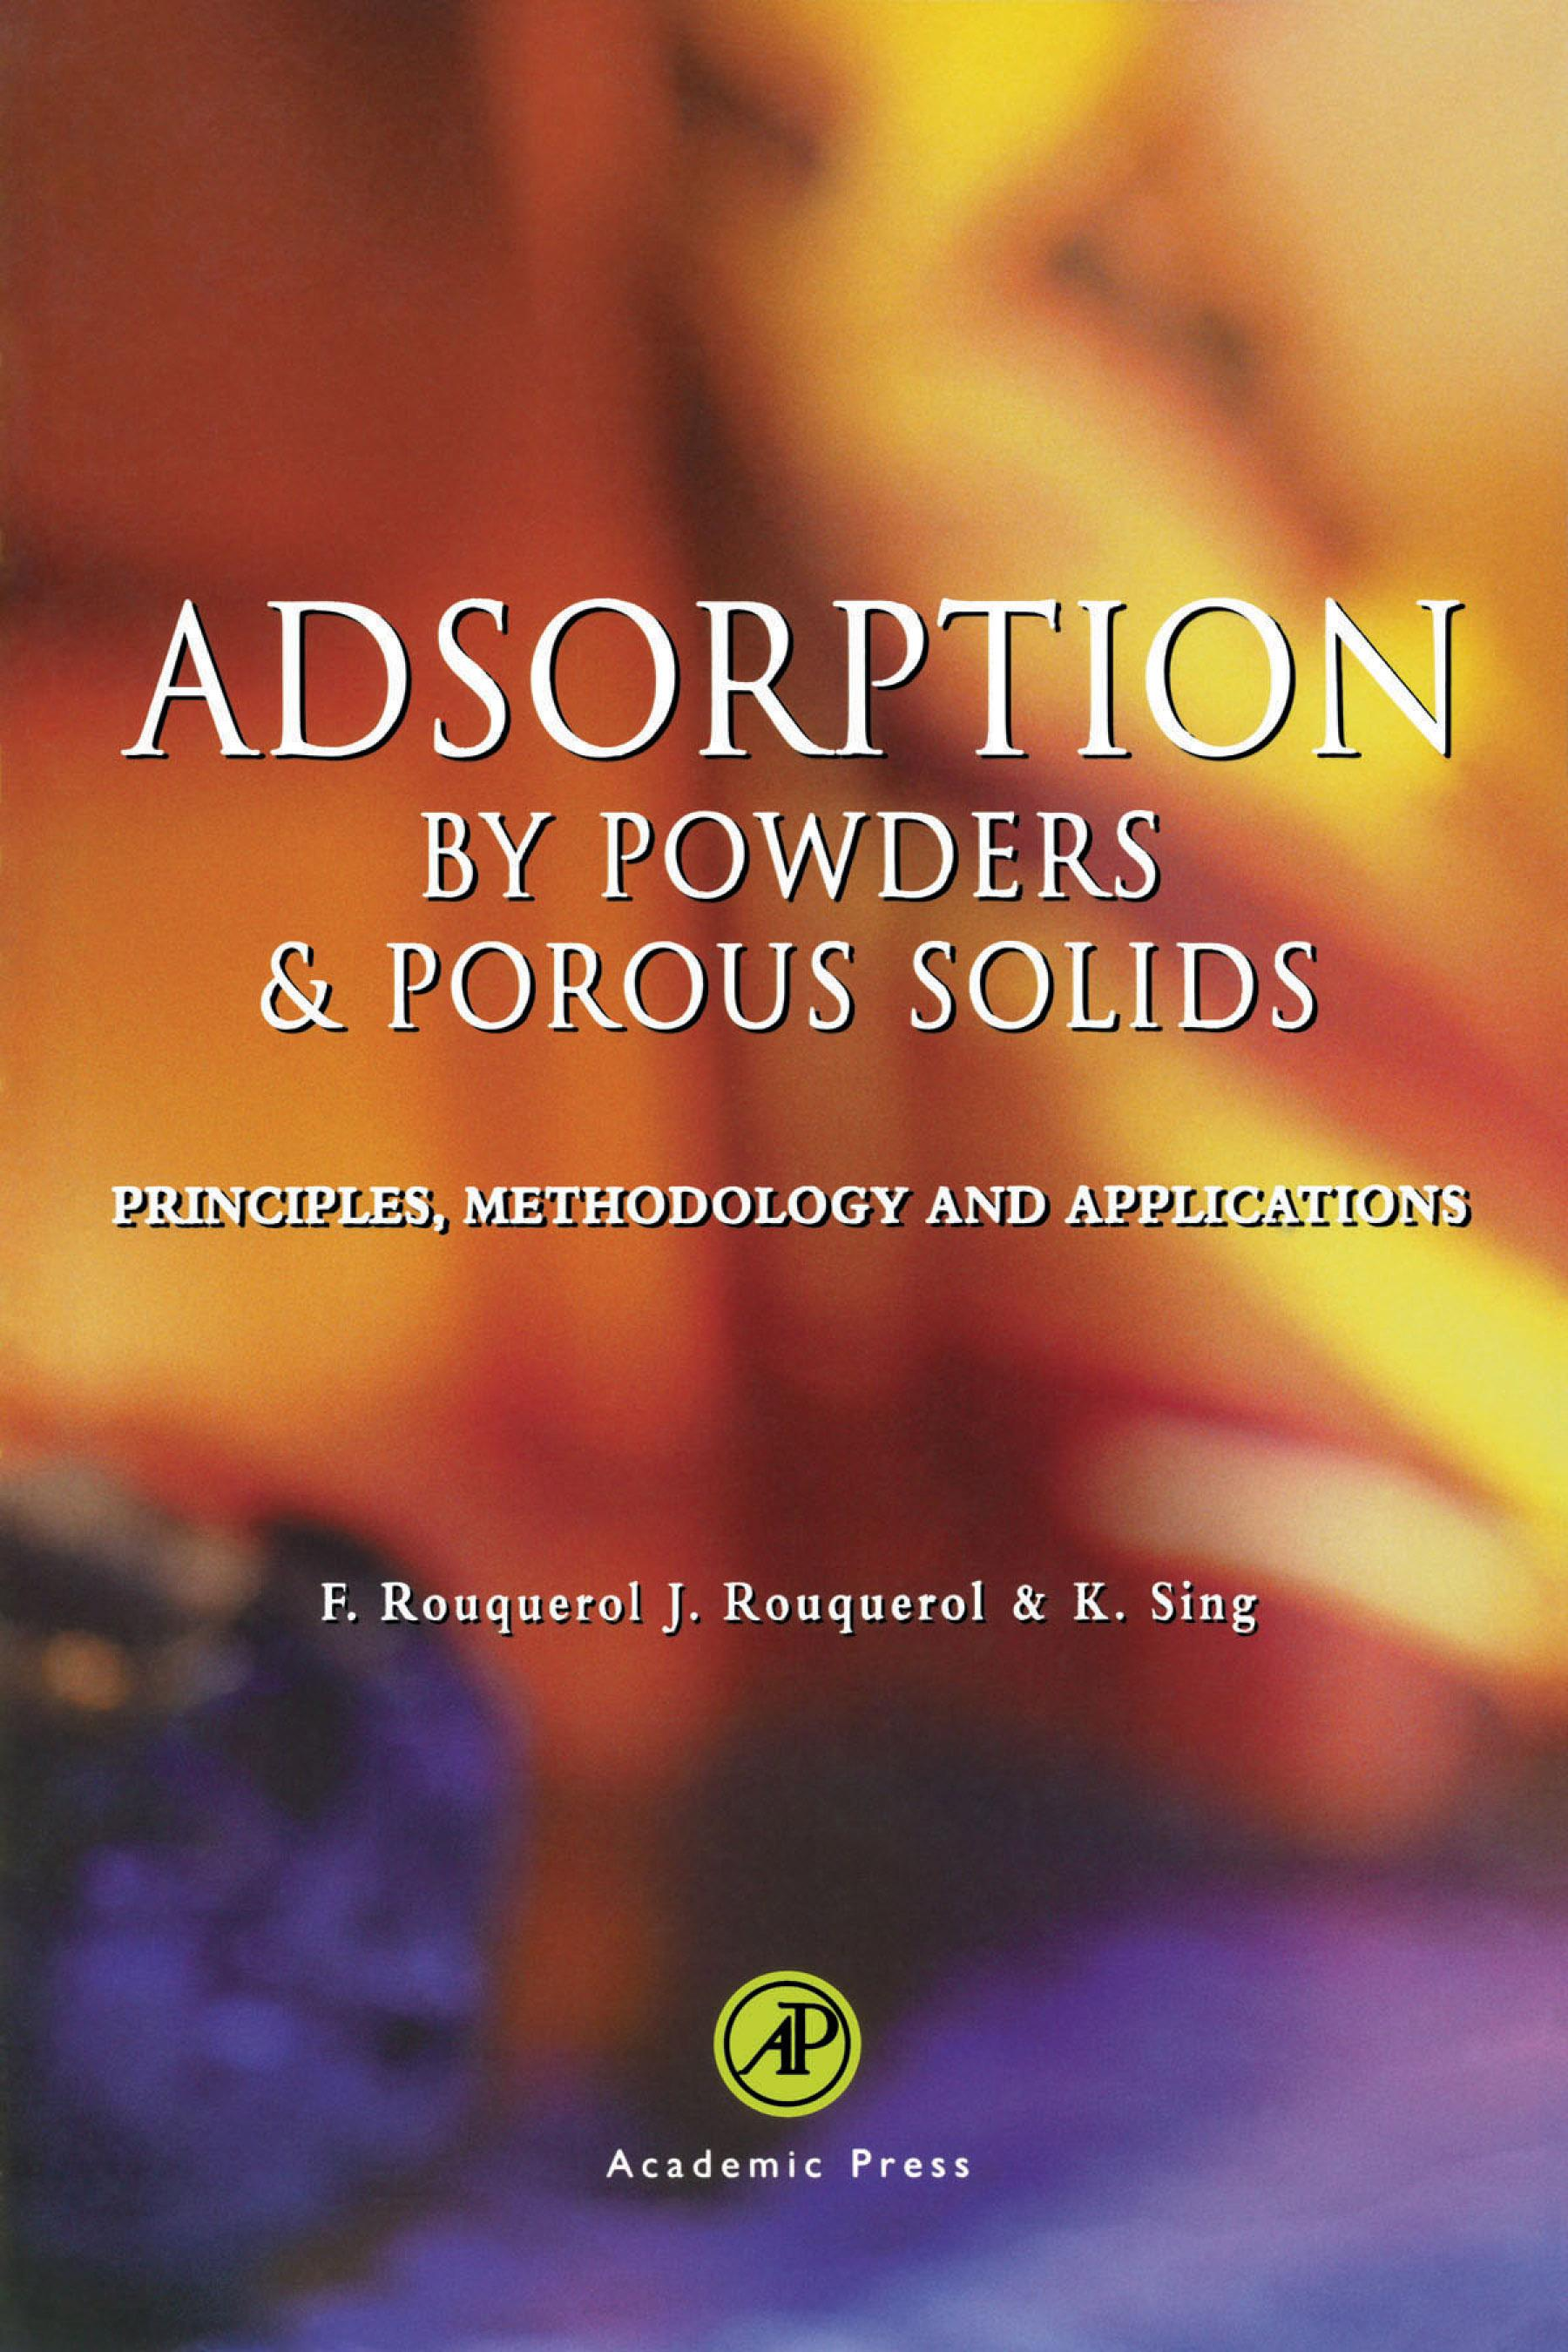 Adsorption by Powders and Porous Solids Fran?oise Rouquerol, Jean Rouquerol, Kenneth S.W. Sing